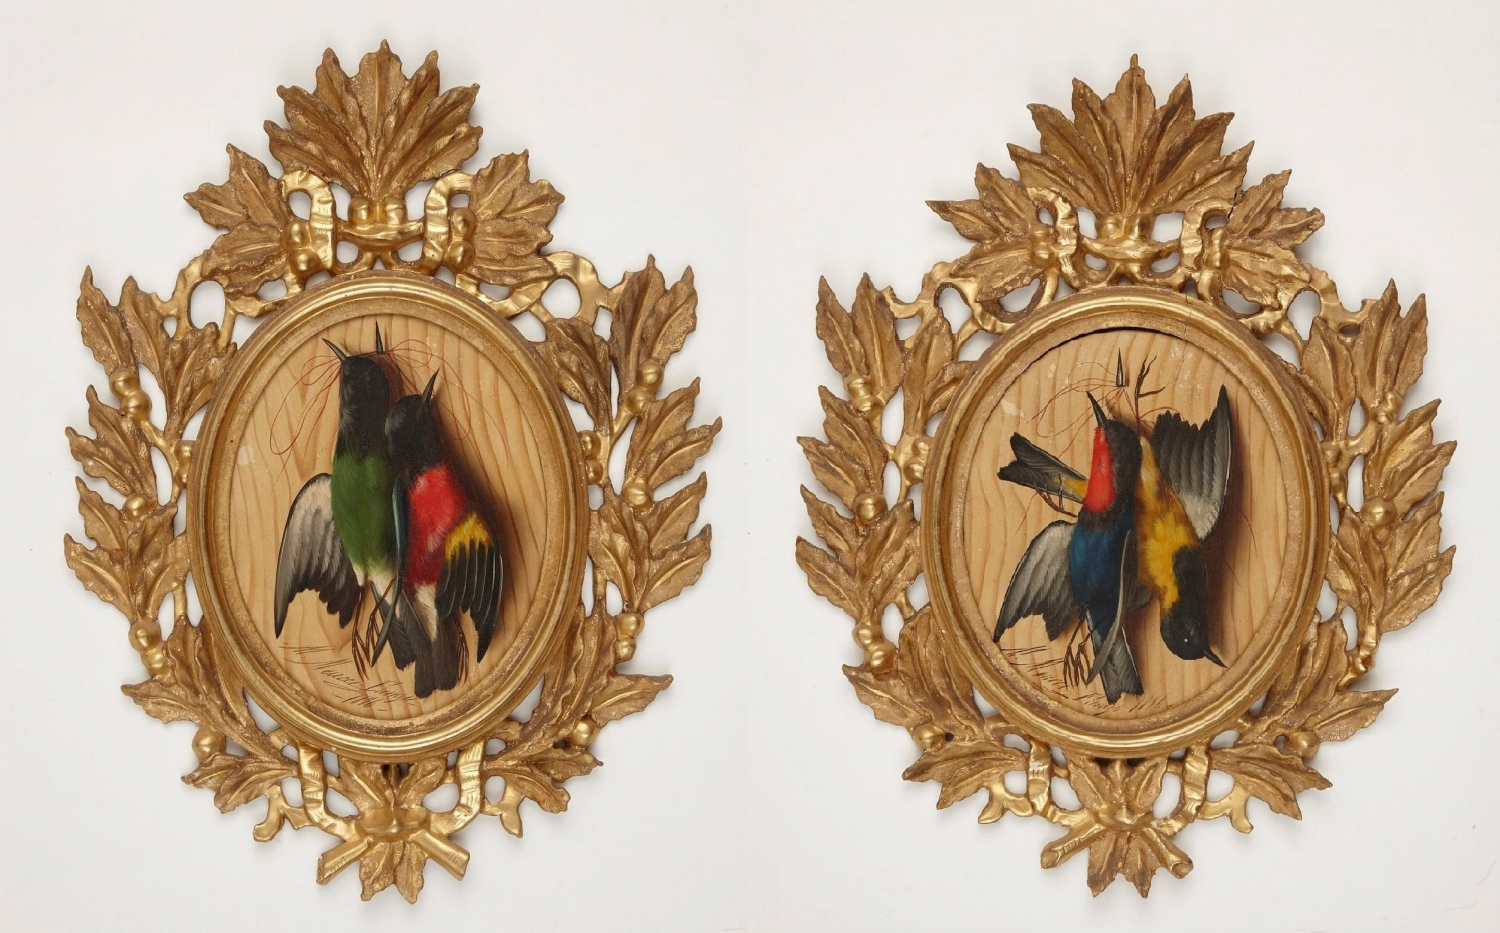 Two sets of stuffed birds in wooden frames.